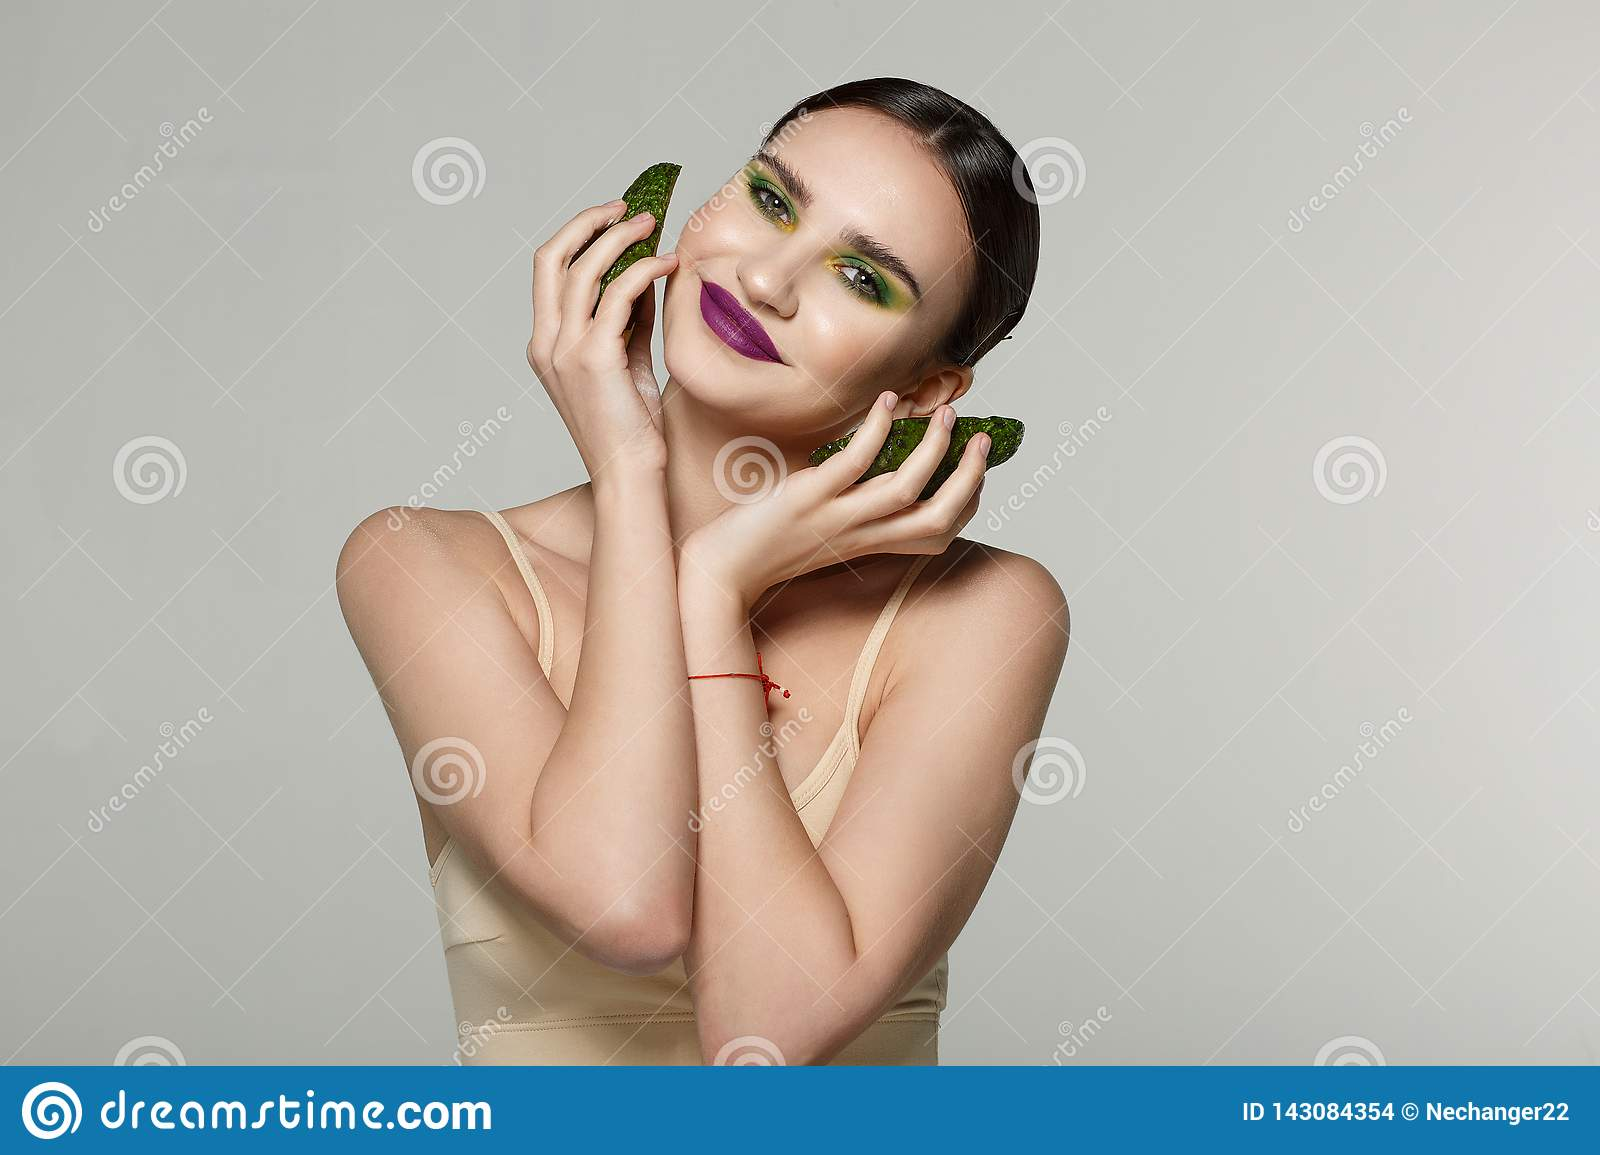 Pleasent smiling girl with perfect skin leads healthy lifestyle